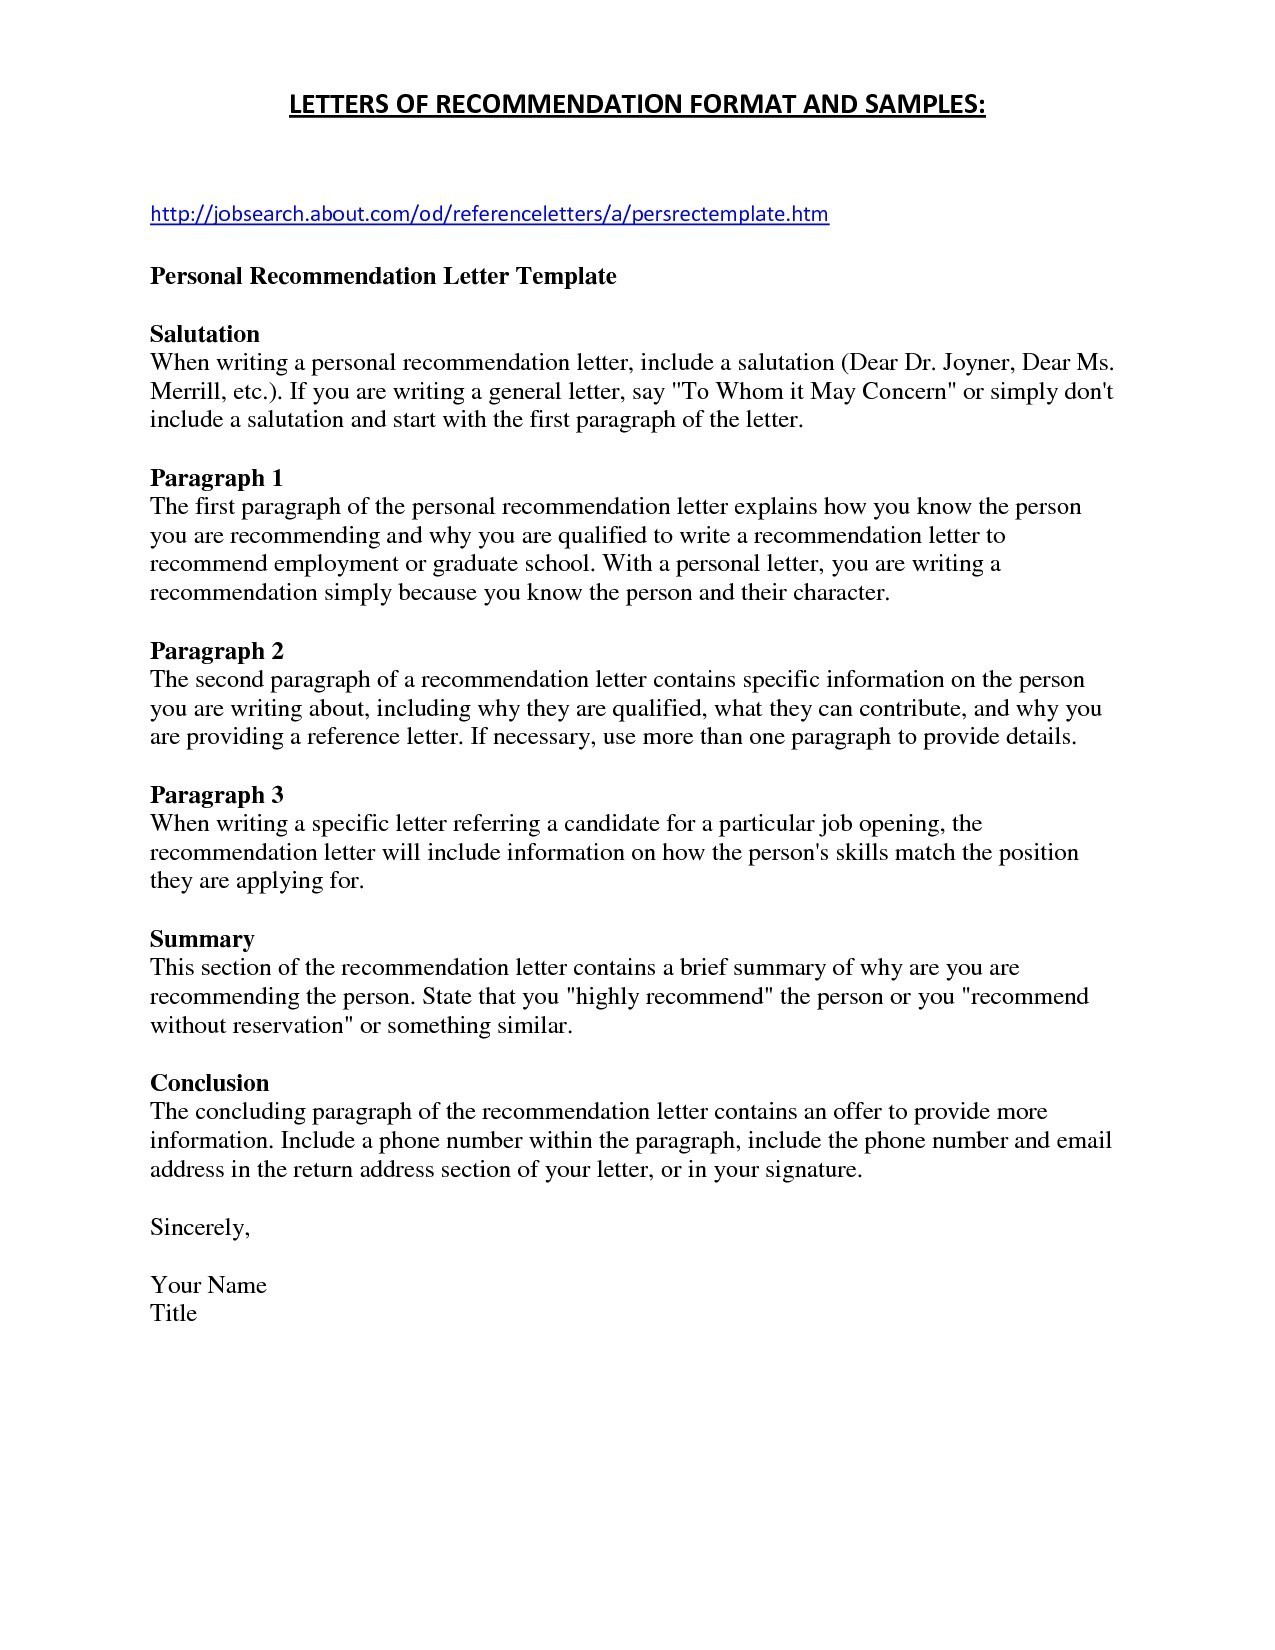 Good Self Descriptive Words for Resume - Self Descriptive Words for Resume